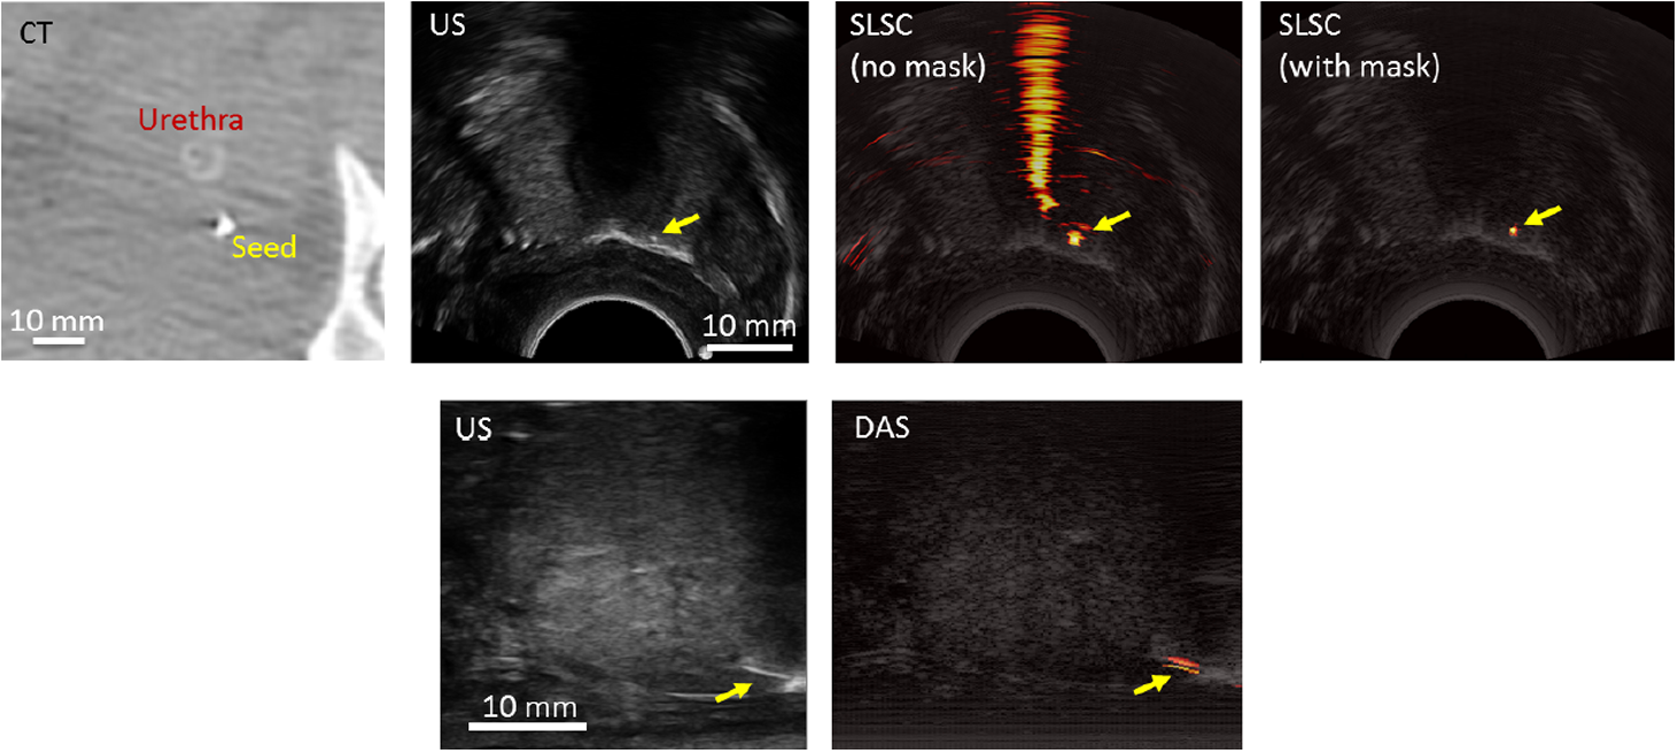 Transurethral light delivery for prostate photoacoustic imaging